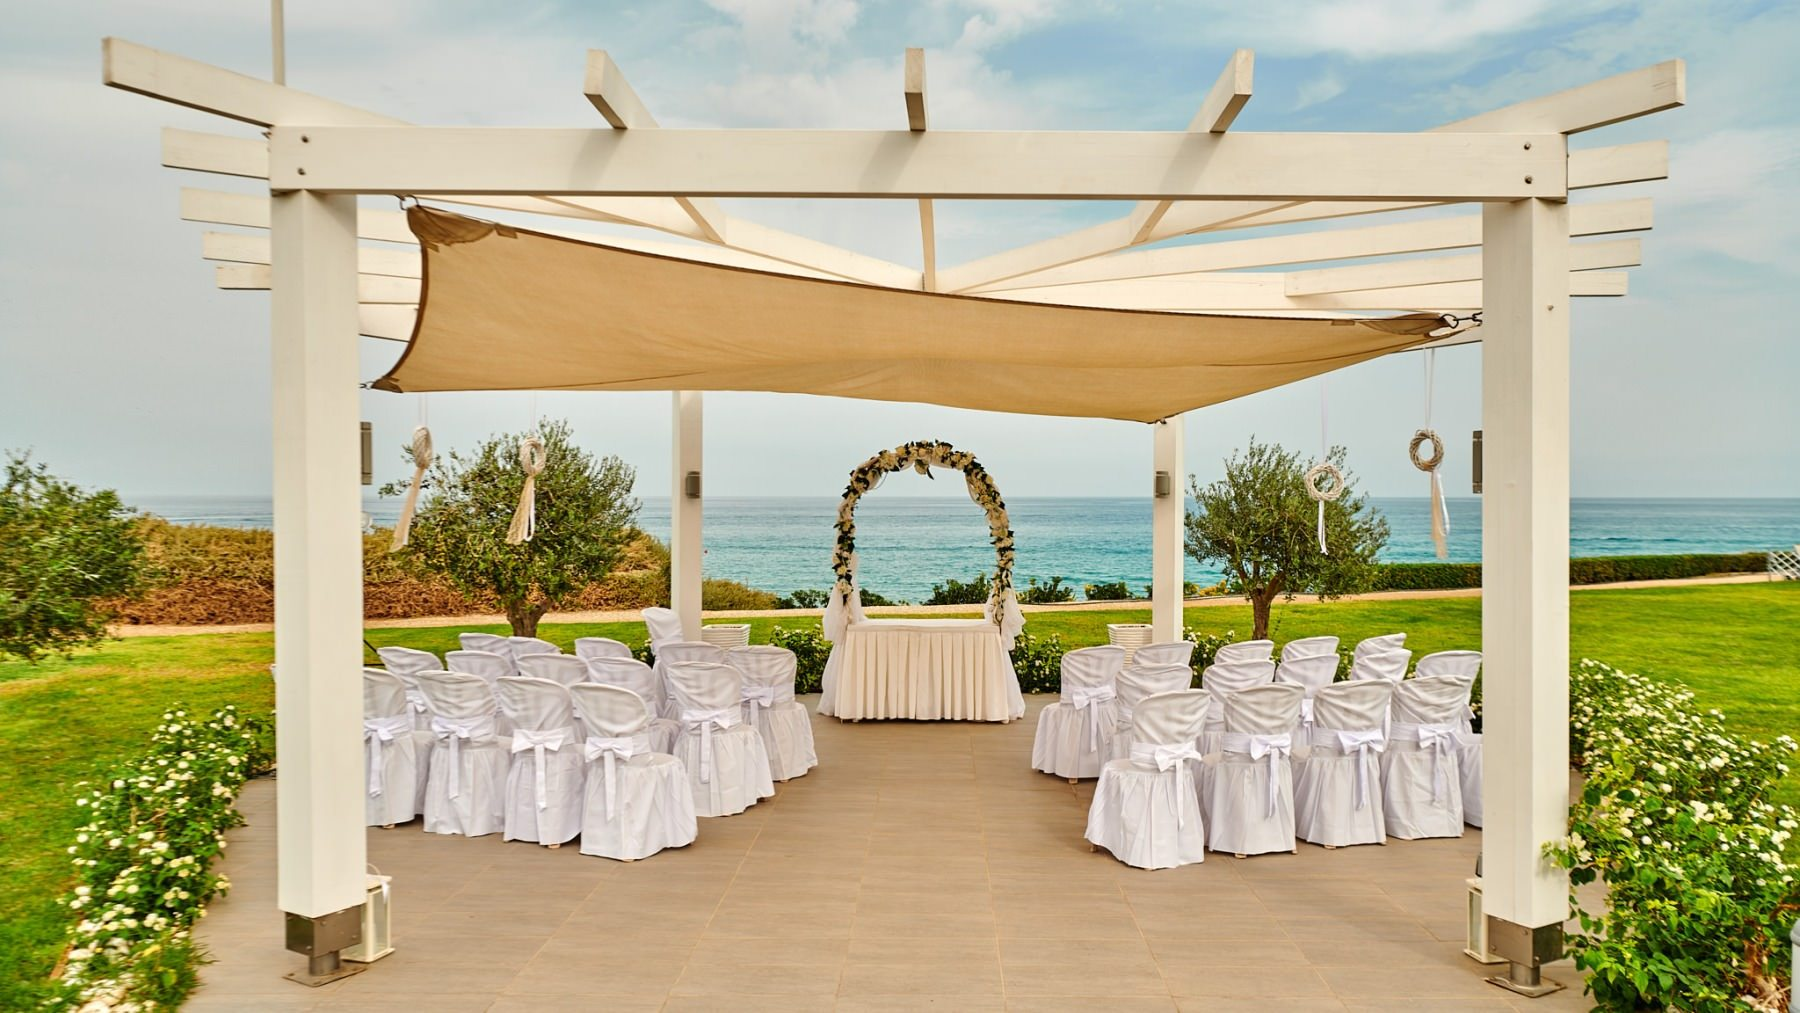 The wedding of Natalie and Steve at the Pernera Beach Hotel in Protaras